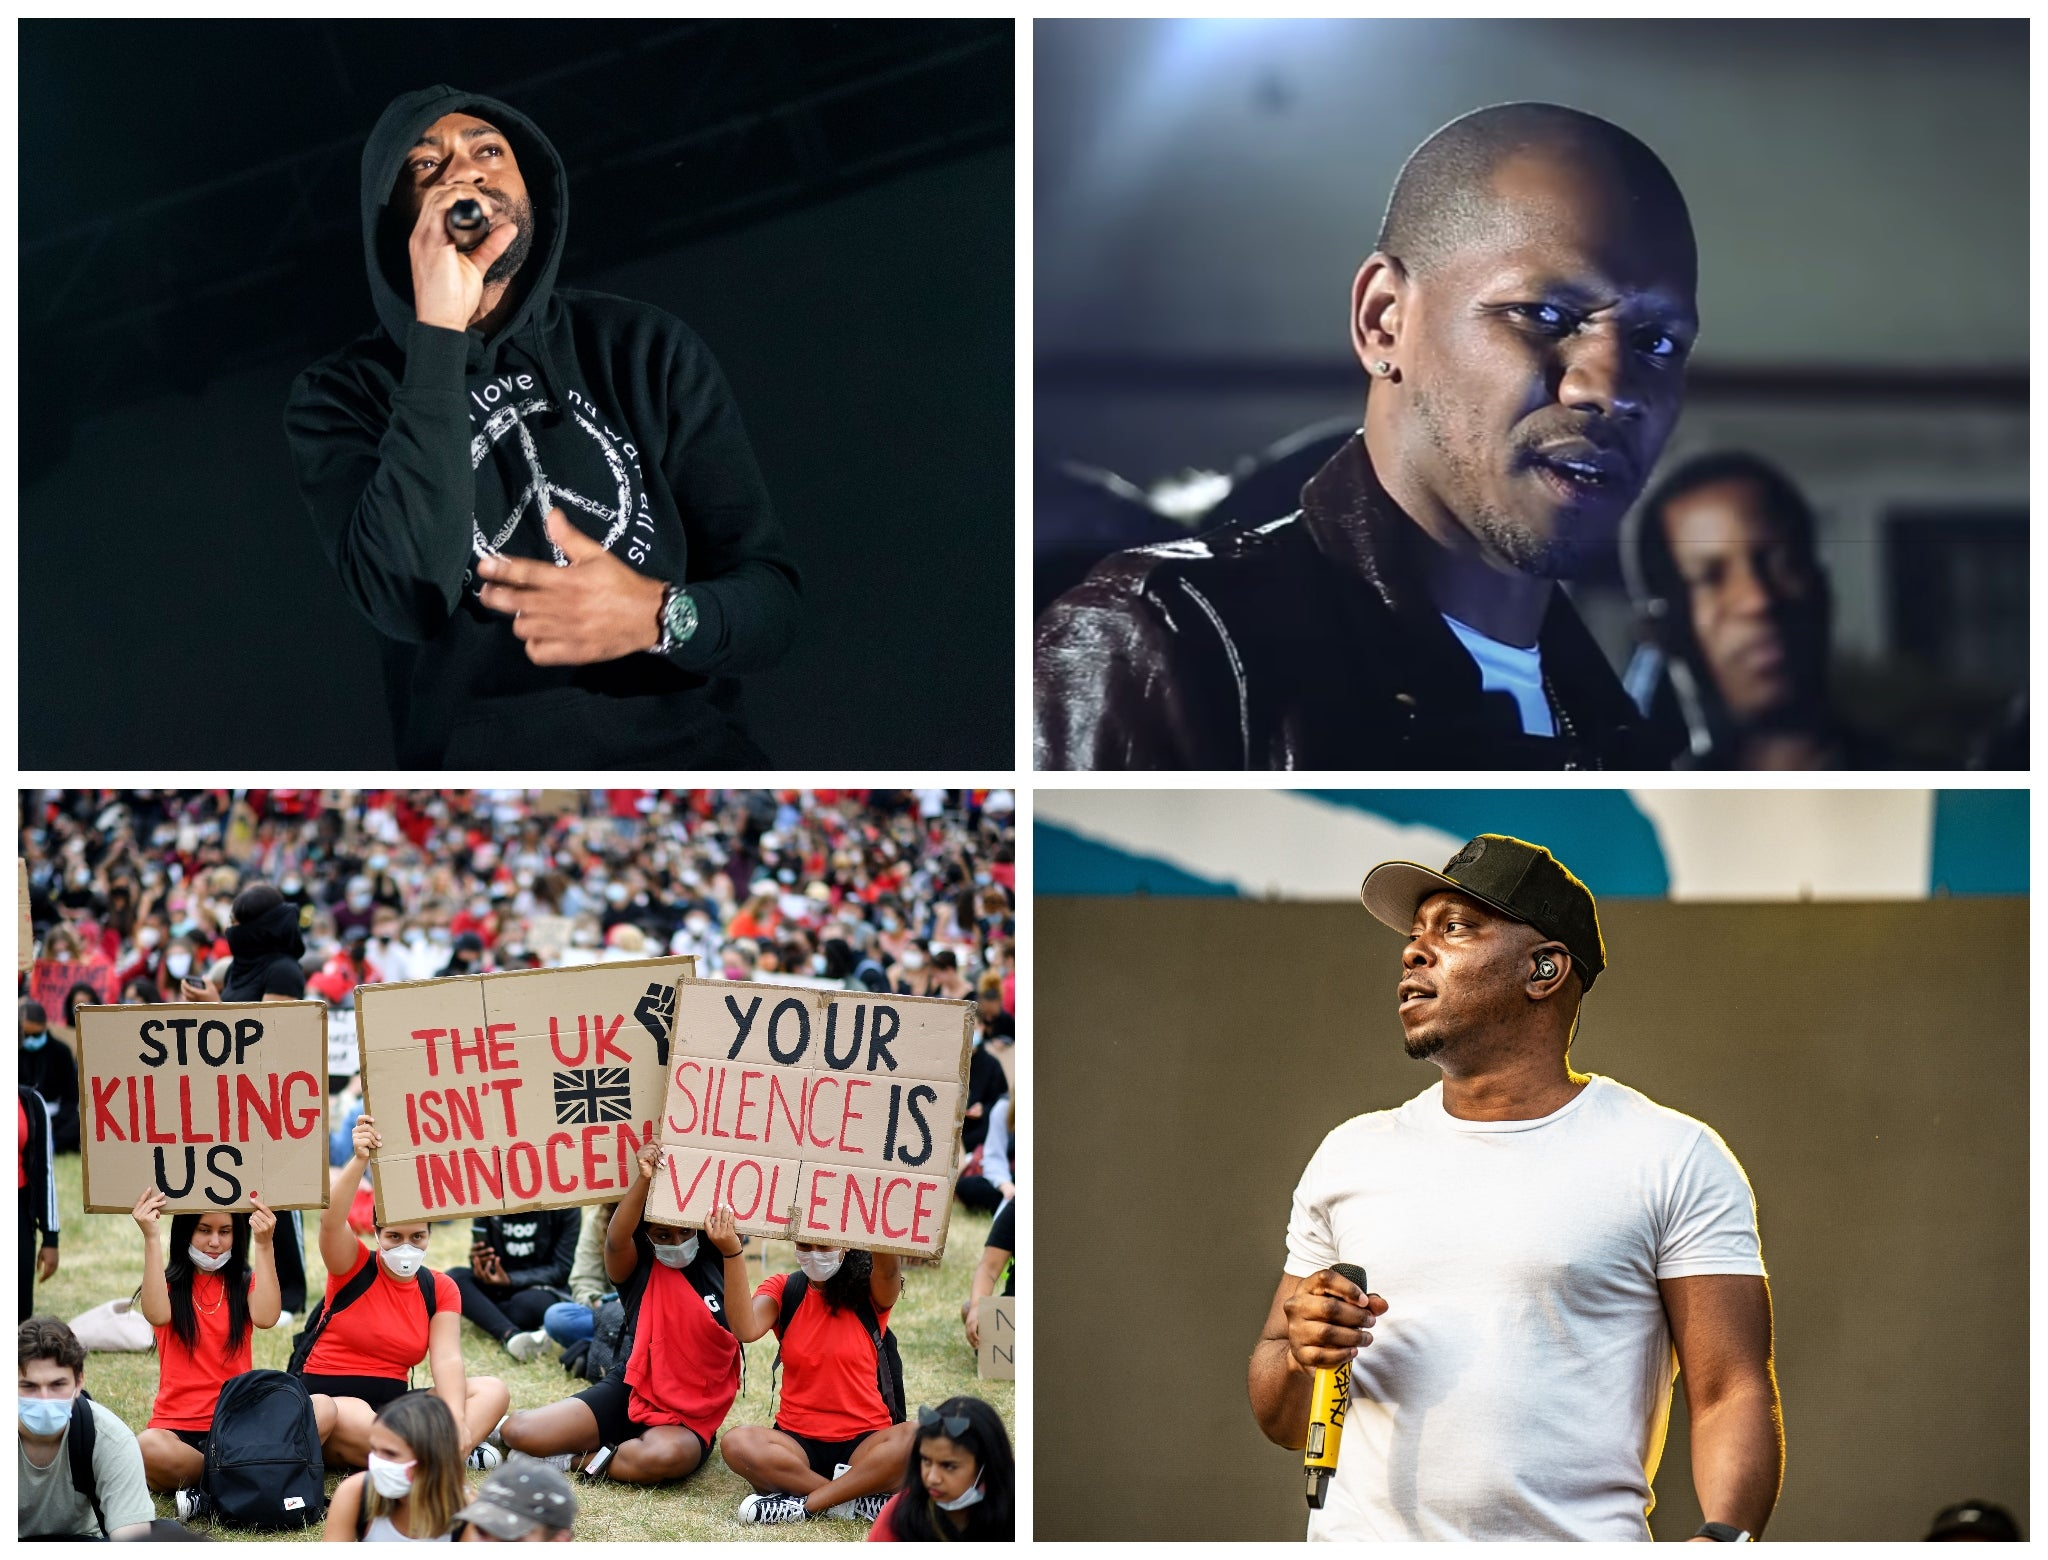 The British rap songs that speak to black pain, from Kano to Giggs | The  Independent | The Independent